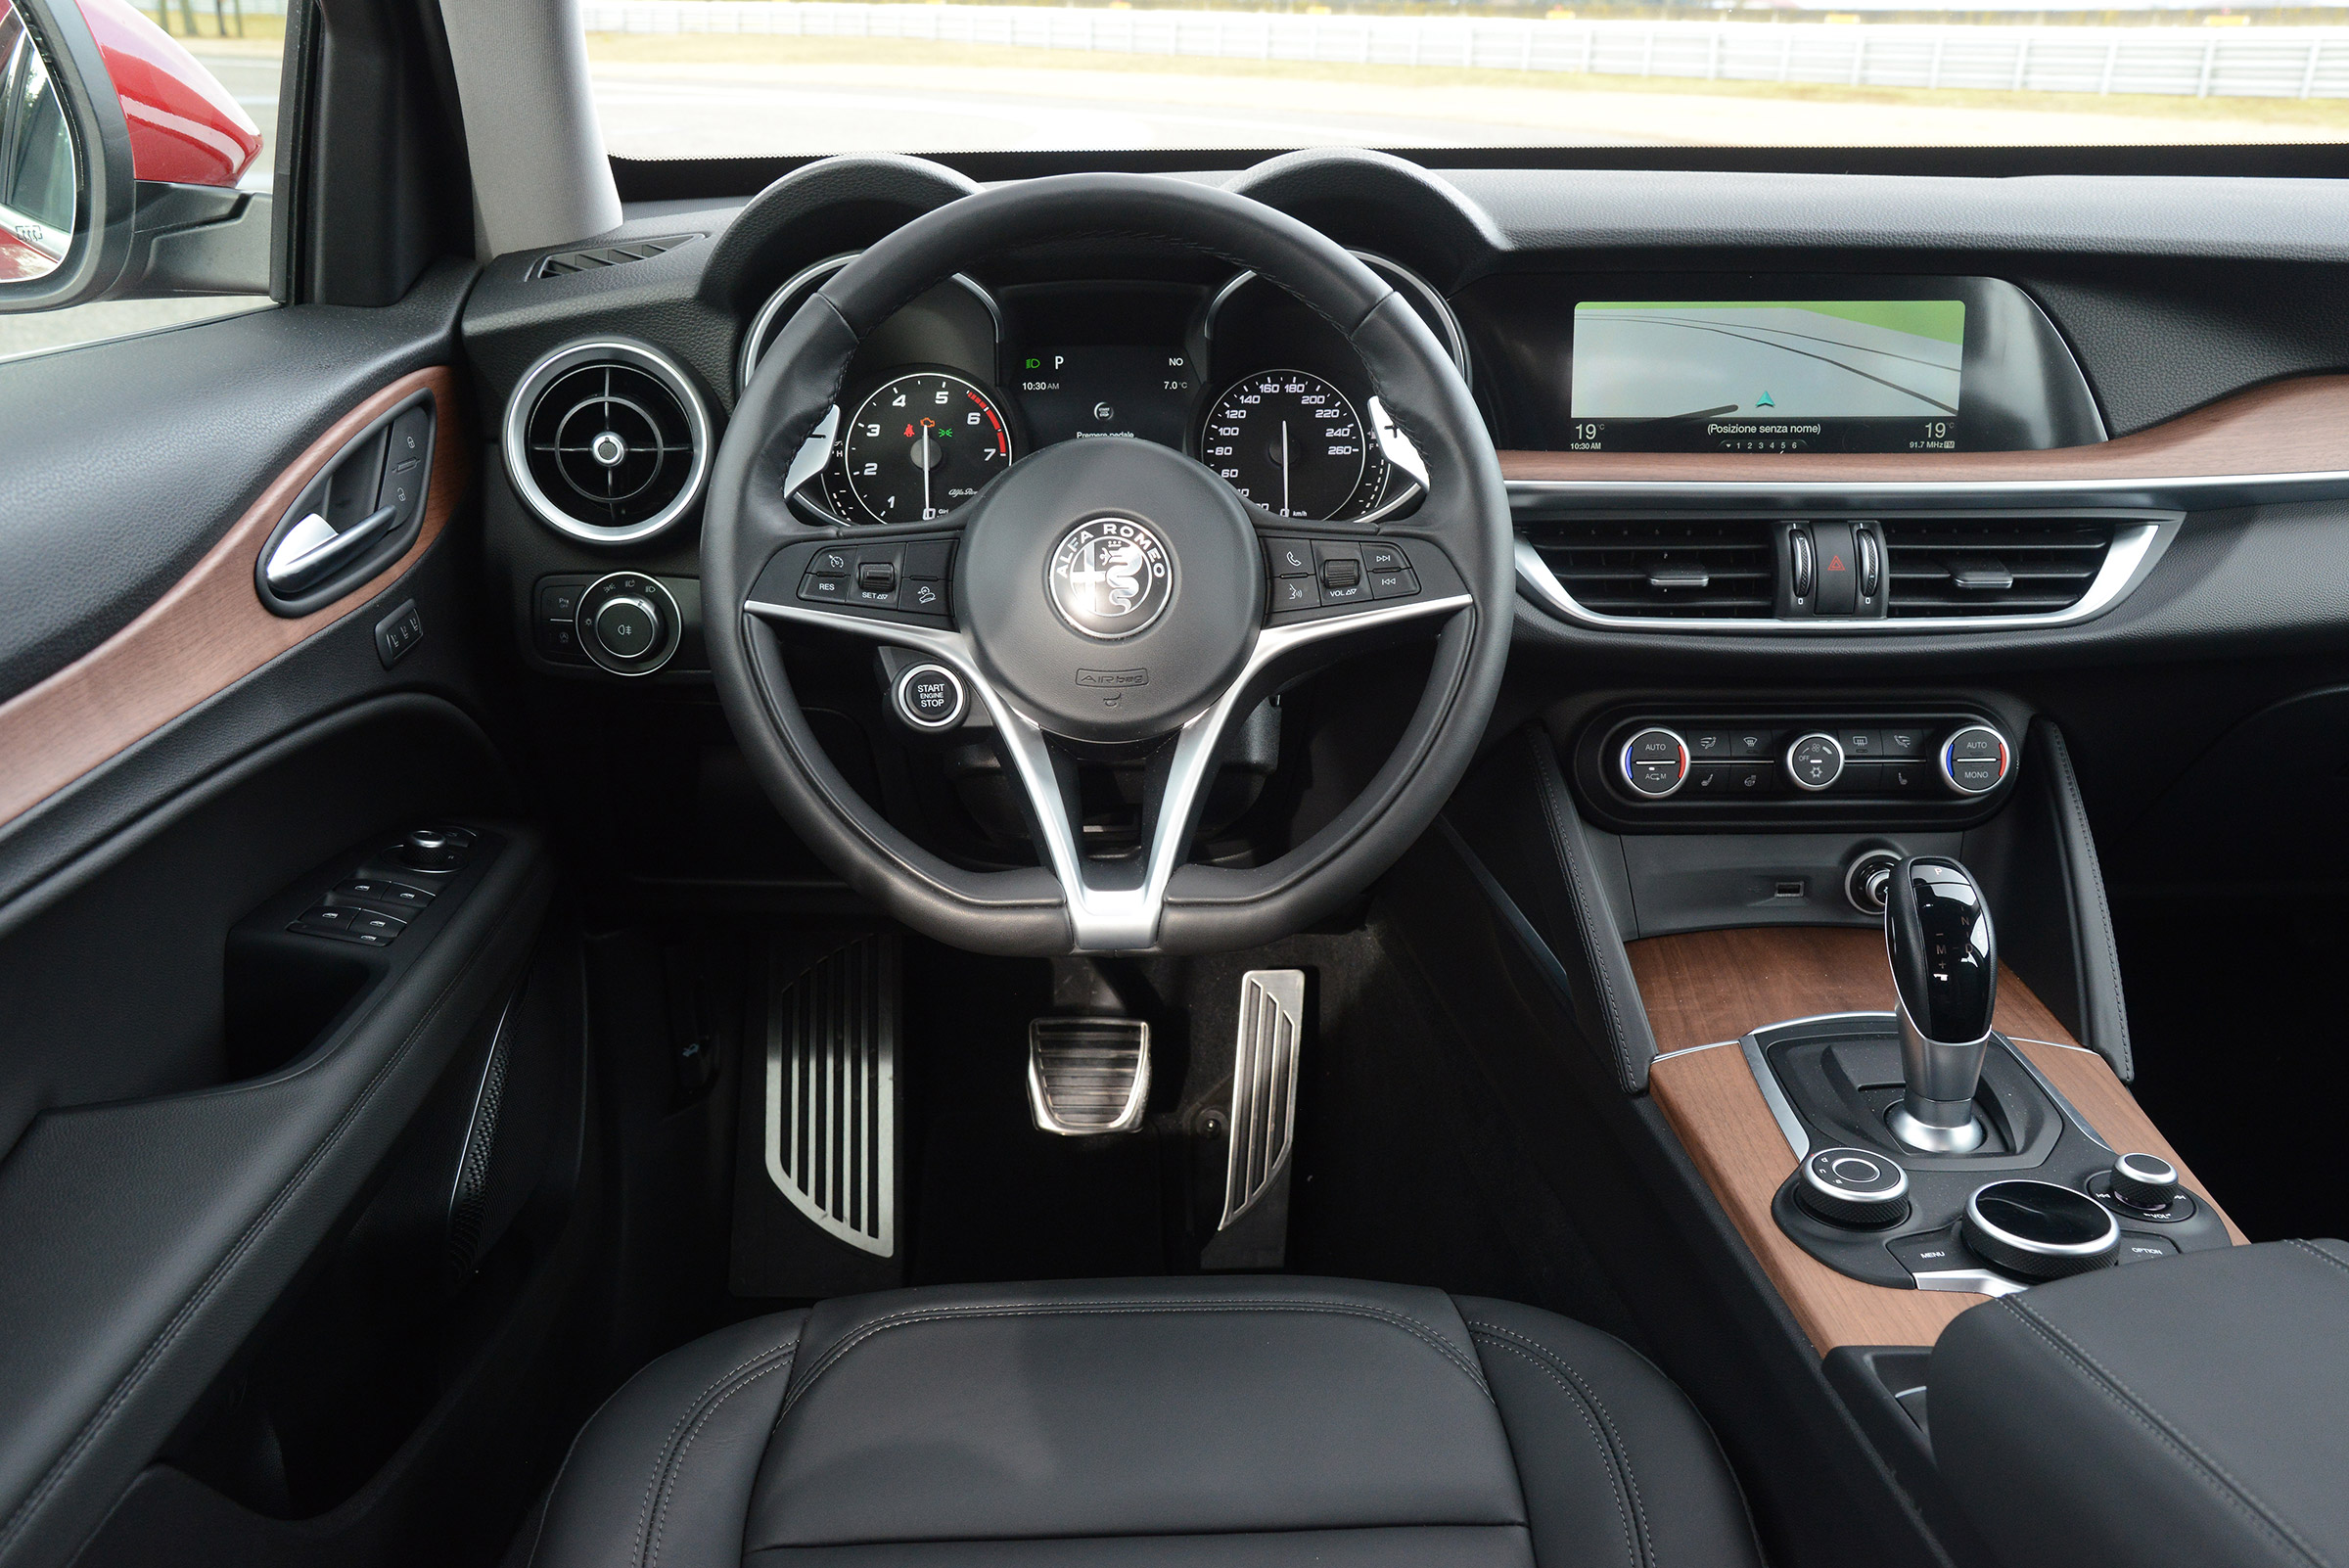 2017 Alfa Romeo Stelvio | Cars Exclusive Videos and Photos ...